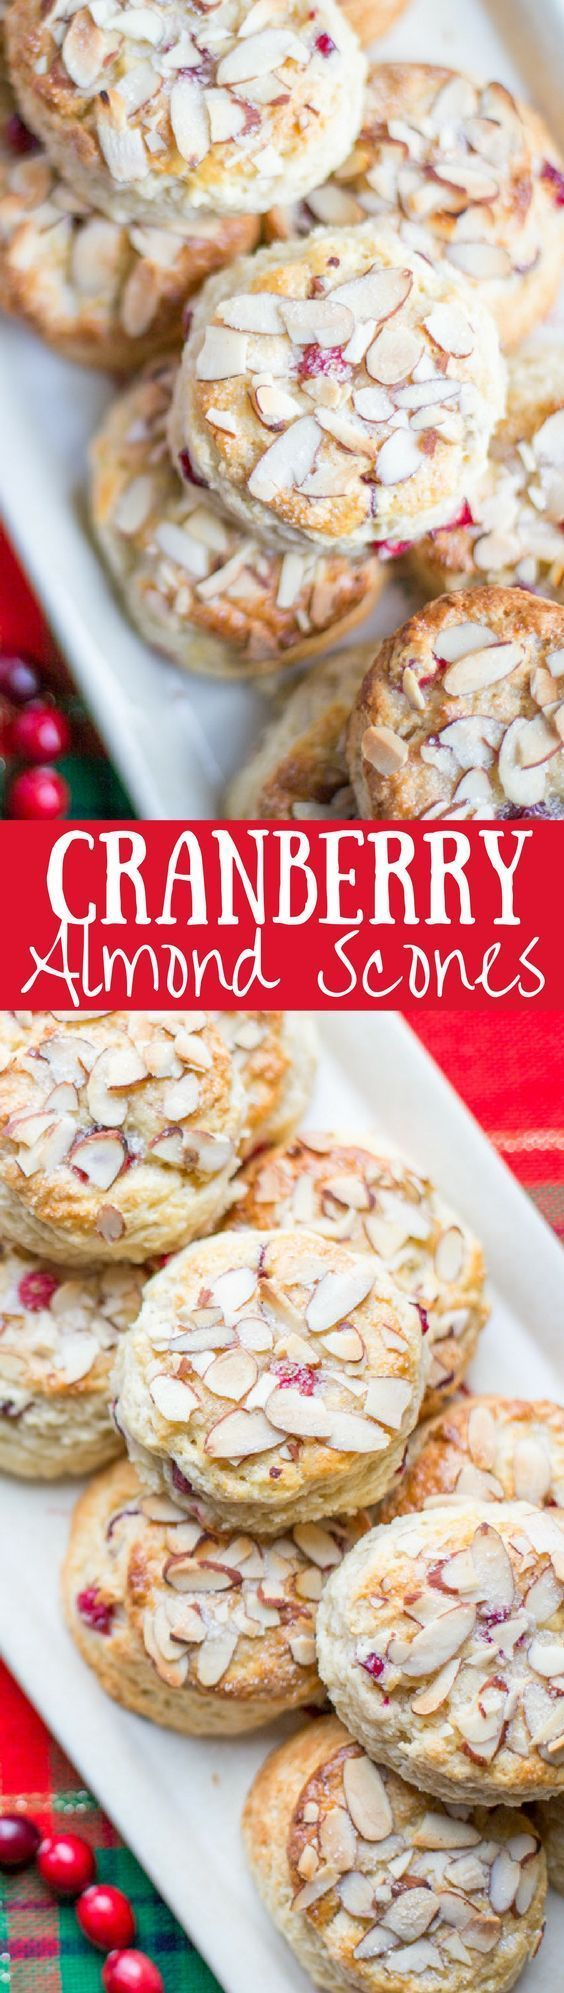 100+ Scone Recipes on Pinterest | Scones, Cream Scones and Lemon